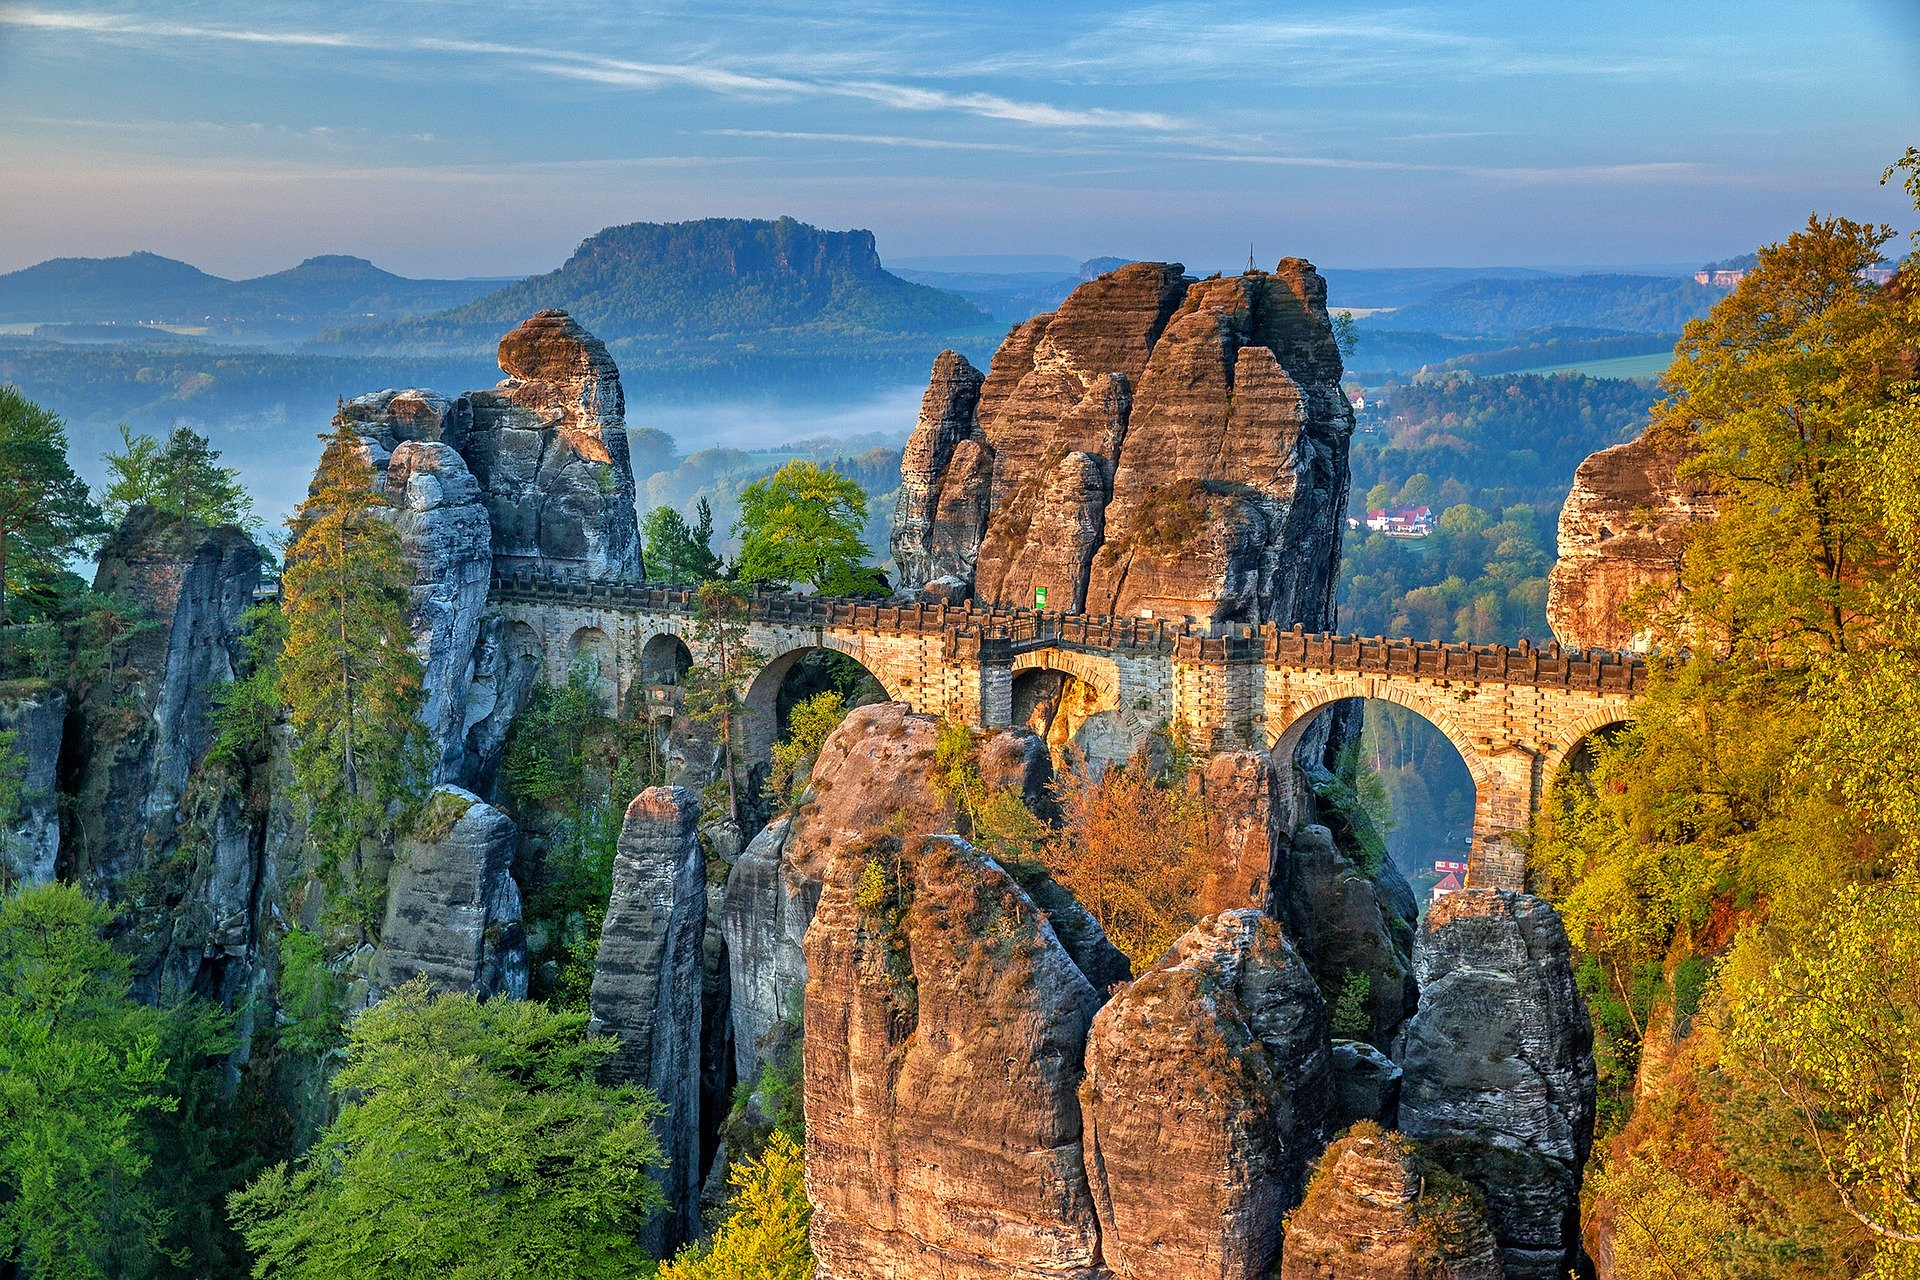 bastei-bridge-3014467_1920.jpg